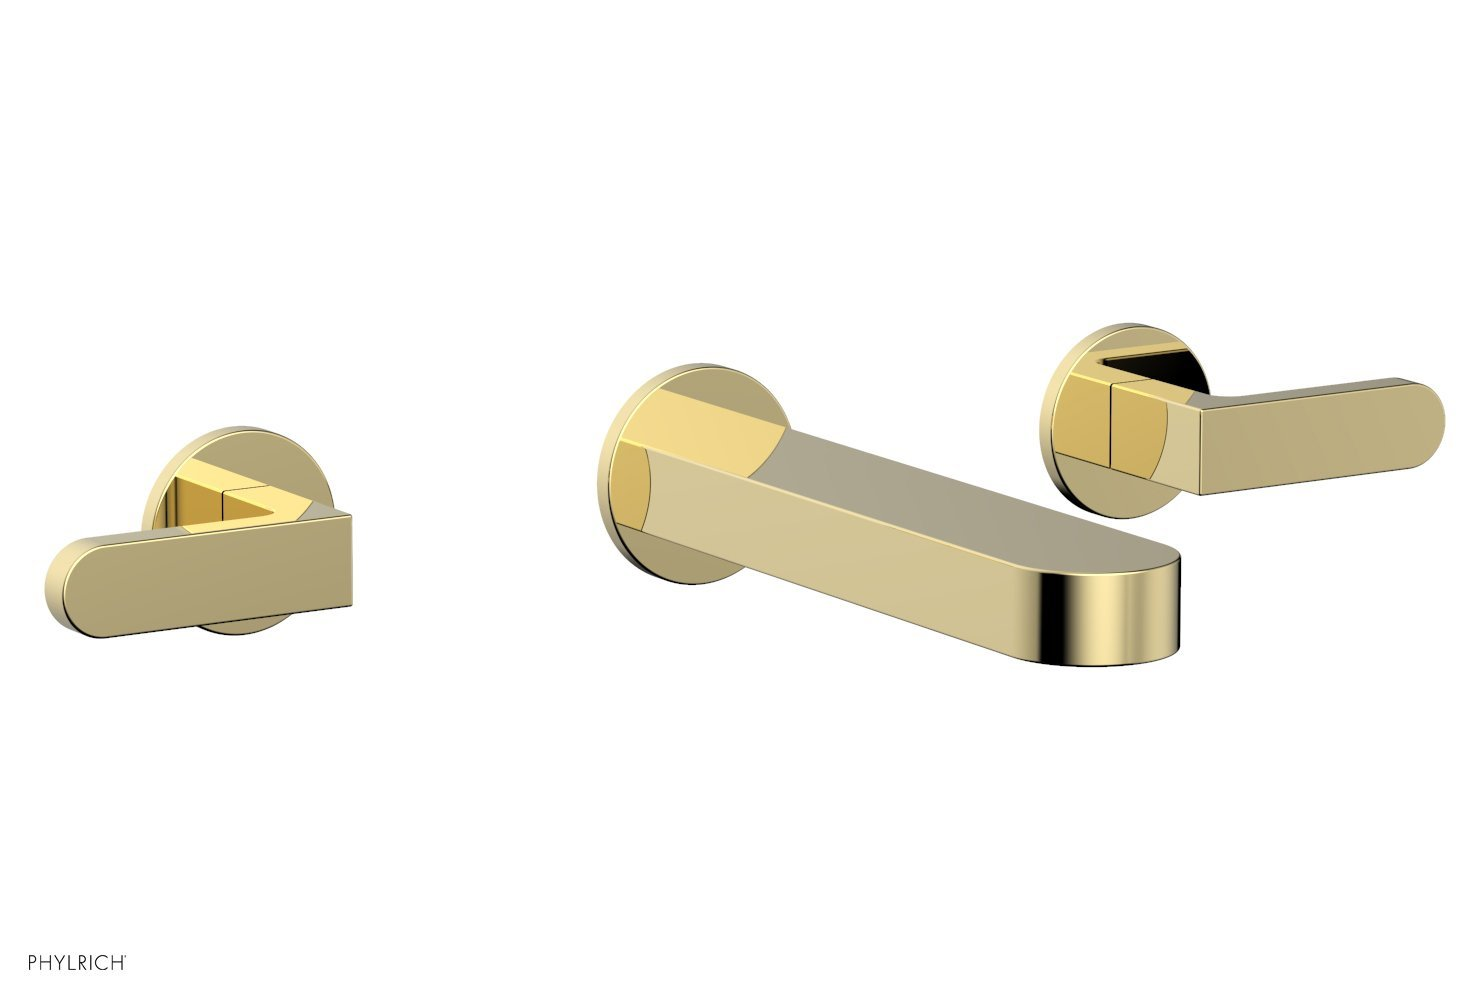 Phylrich 183-12-003 ROND Wall Lavatory Set - Lever Handles - Polished Brass